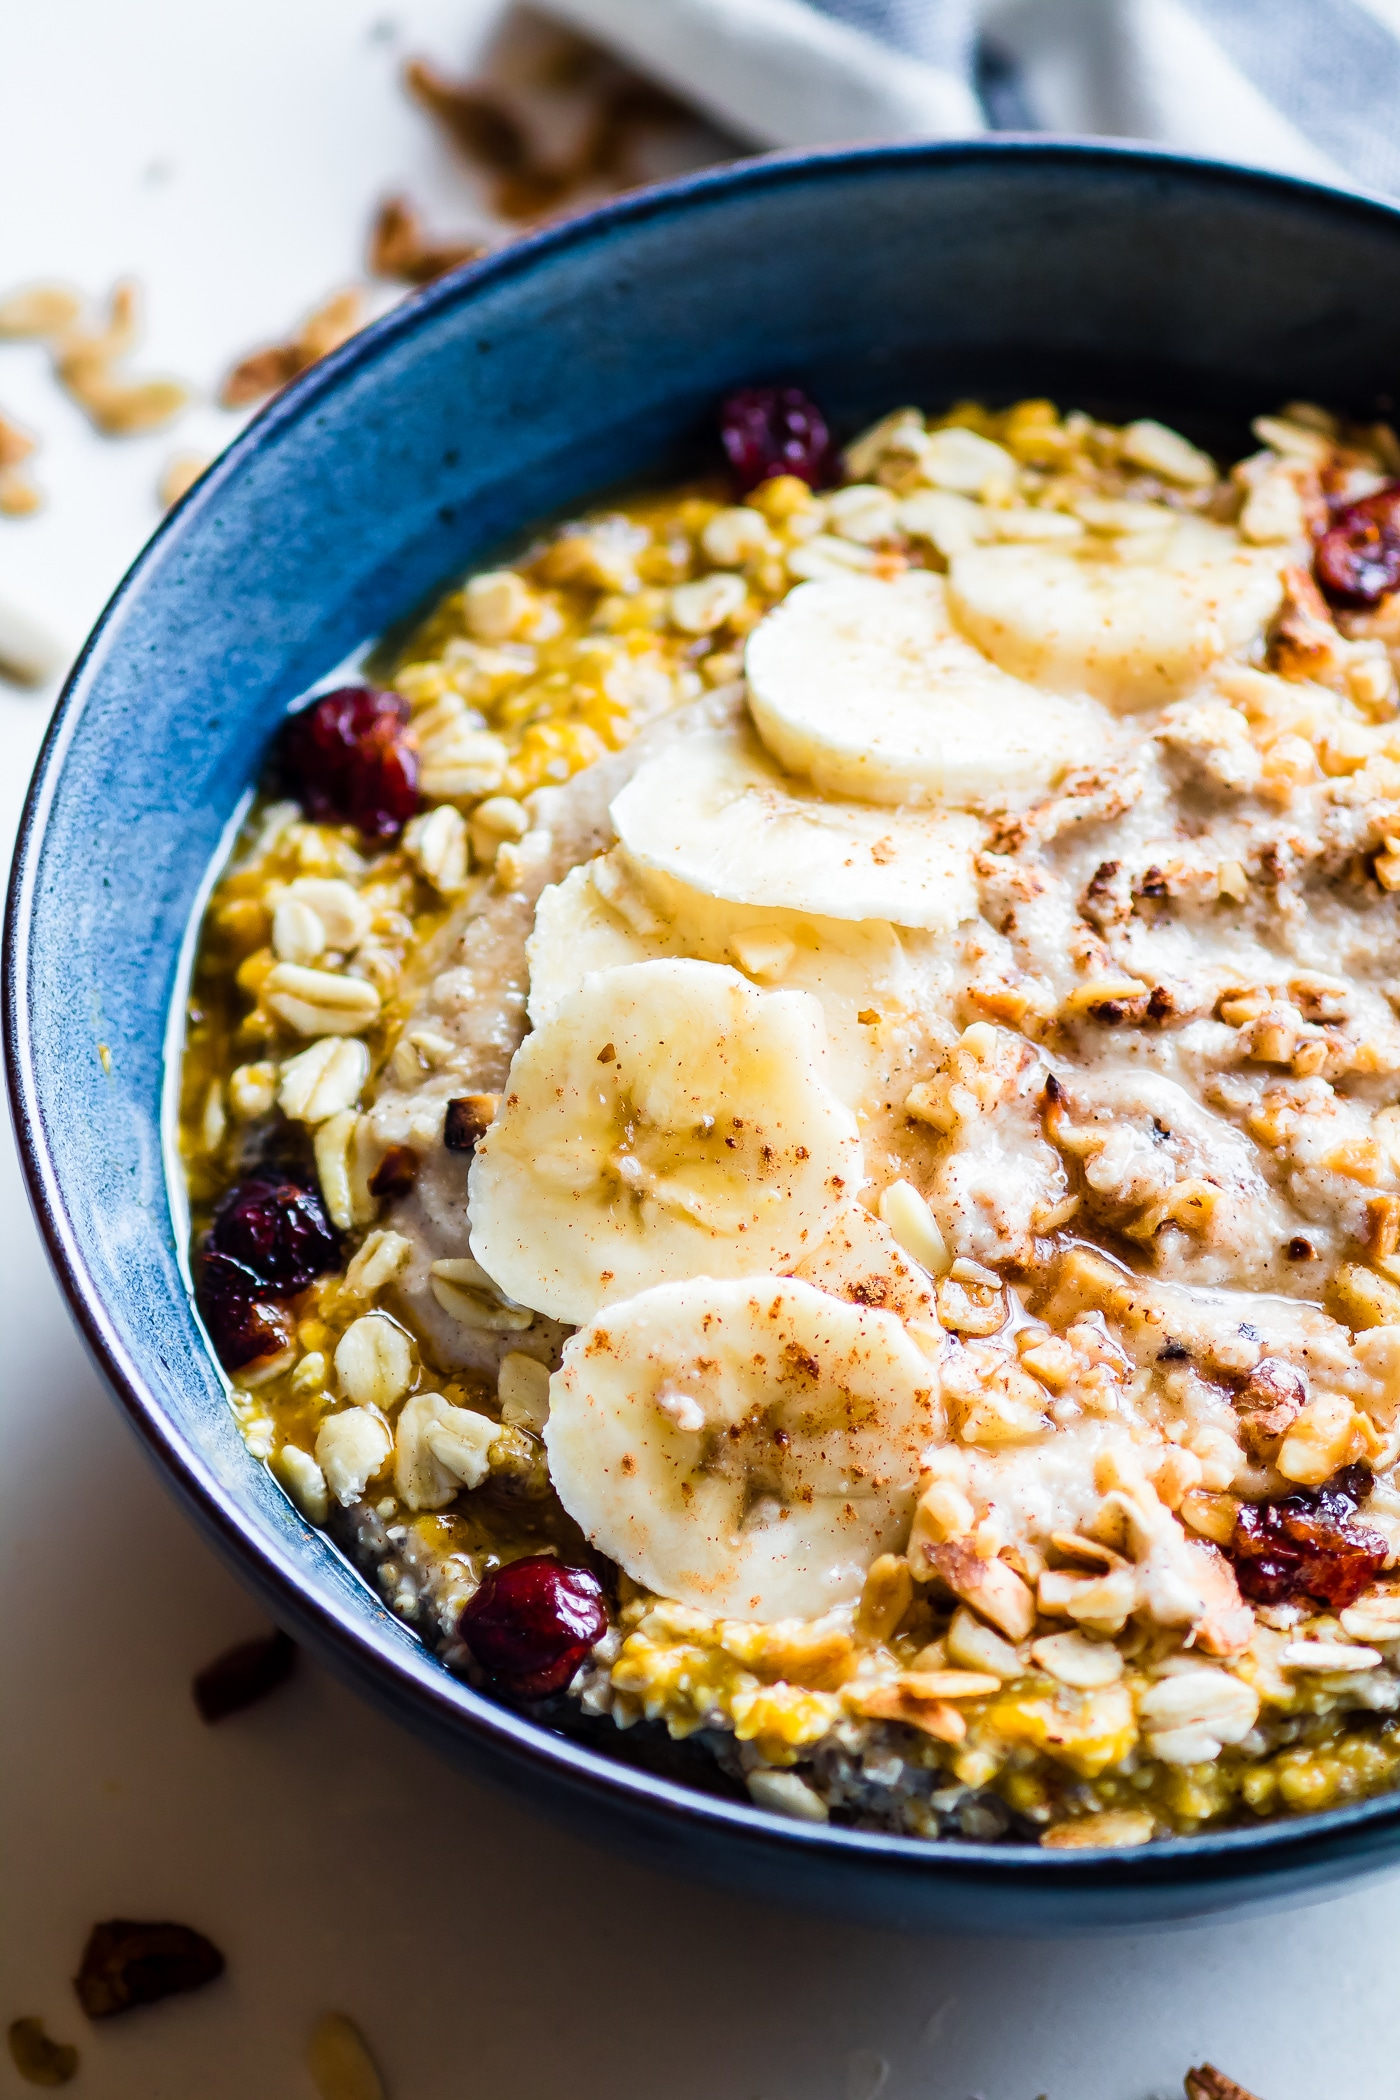 Pumpkin Overnight Oats with Cinnamon Cashew Cream and cranberry nut topping! A vegan pumpkin overnight oats recipe perfect for those Fall breakfasts. I might have snuck in some extra pumpkin spice too! Gluten free, healthy, easy, and oh so nourishing!